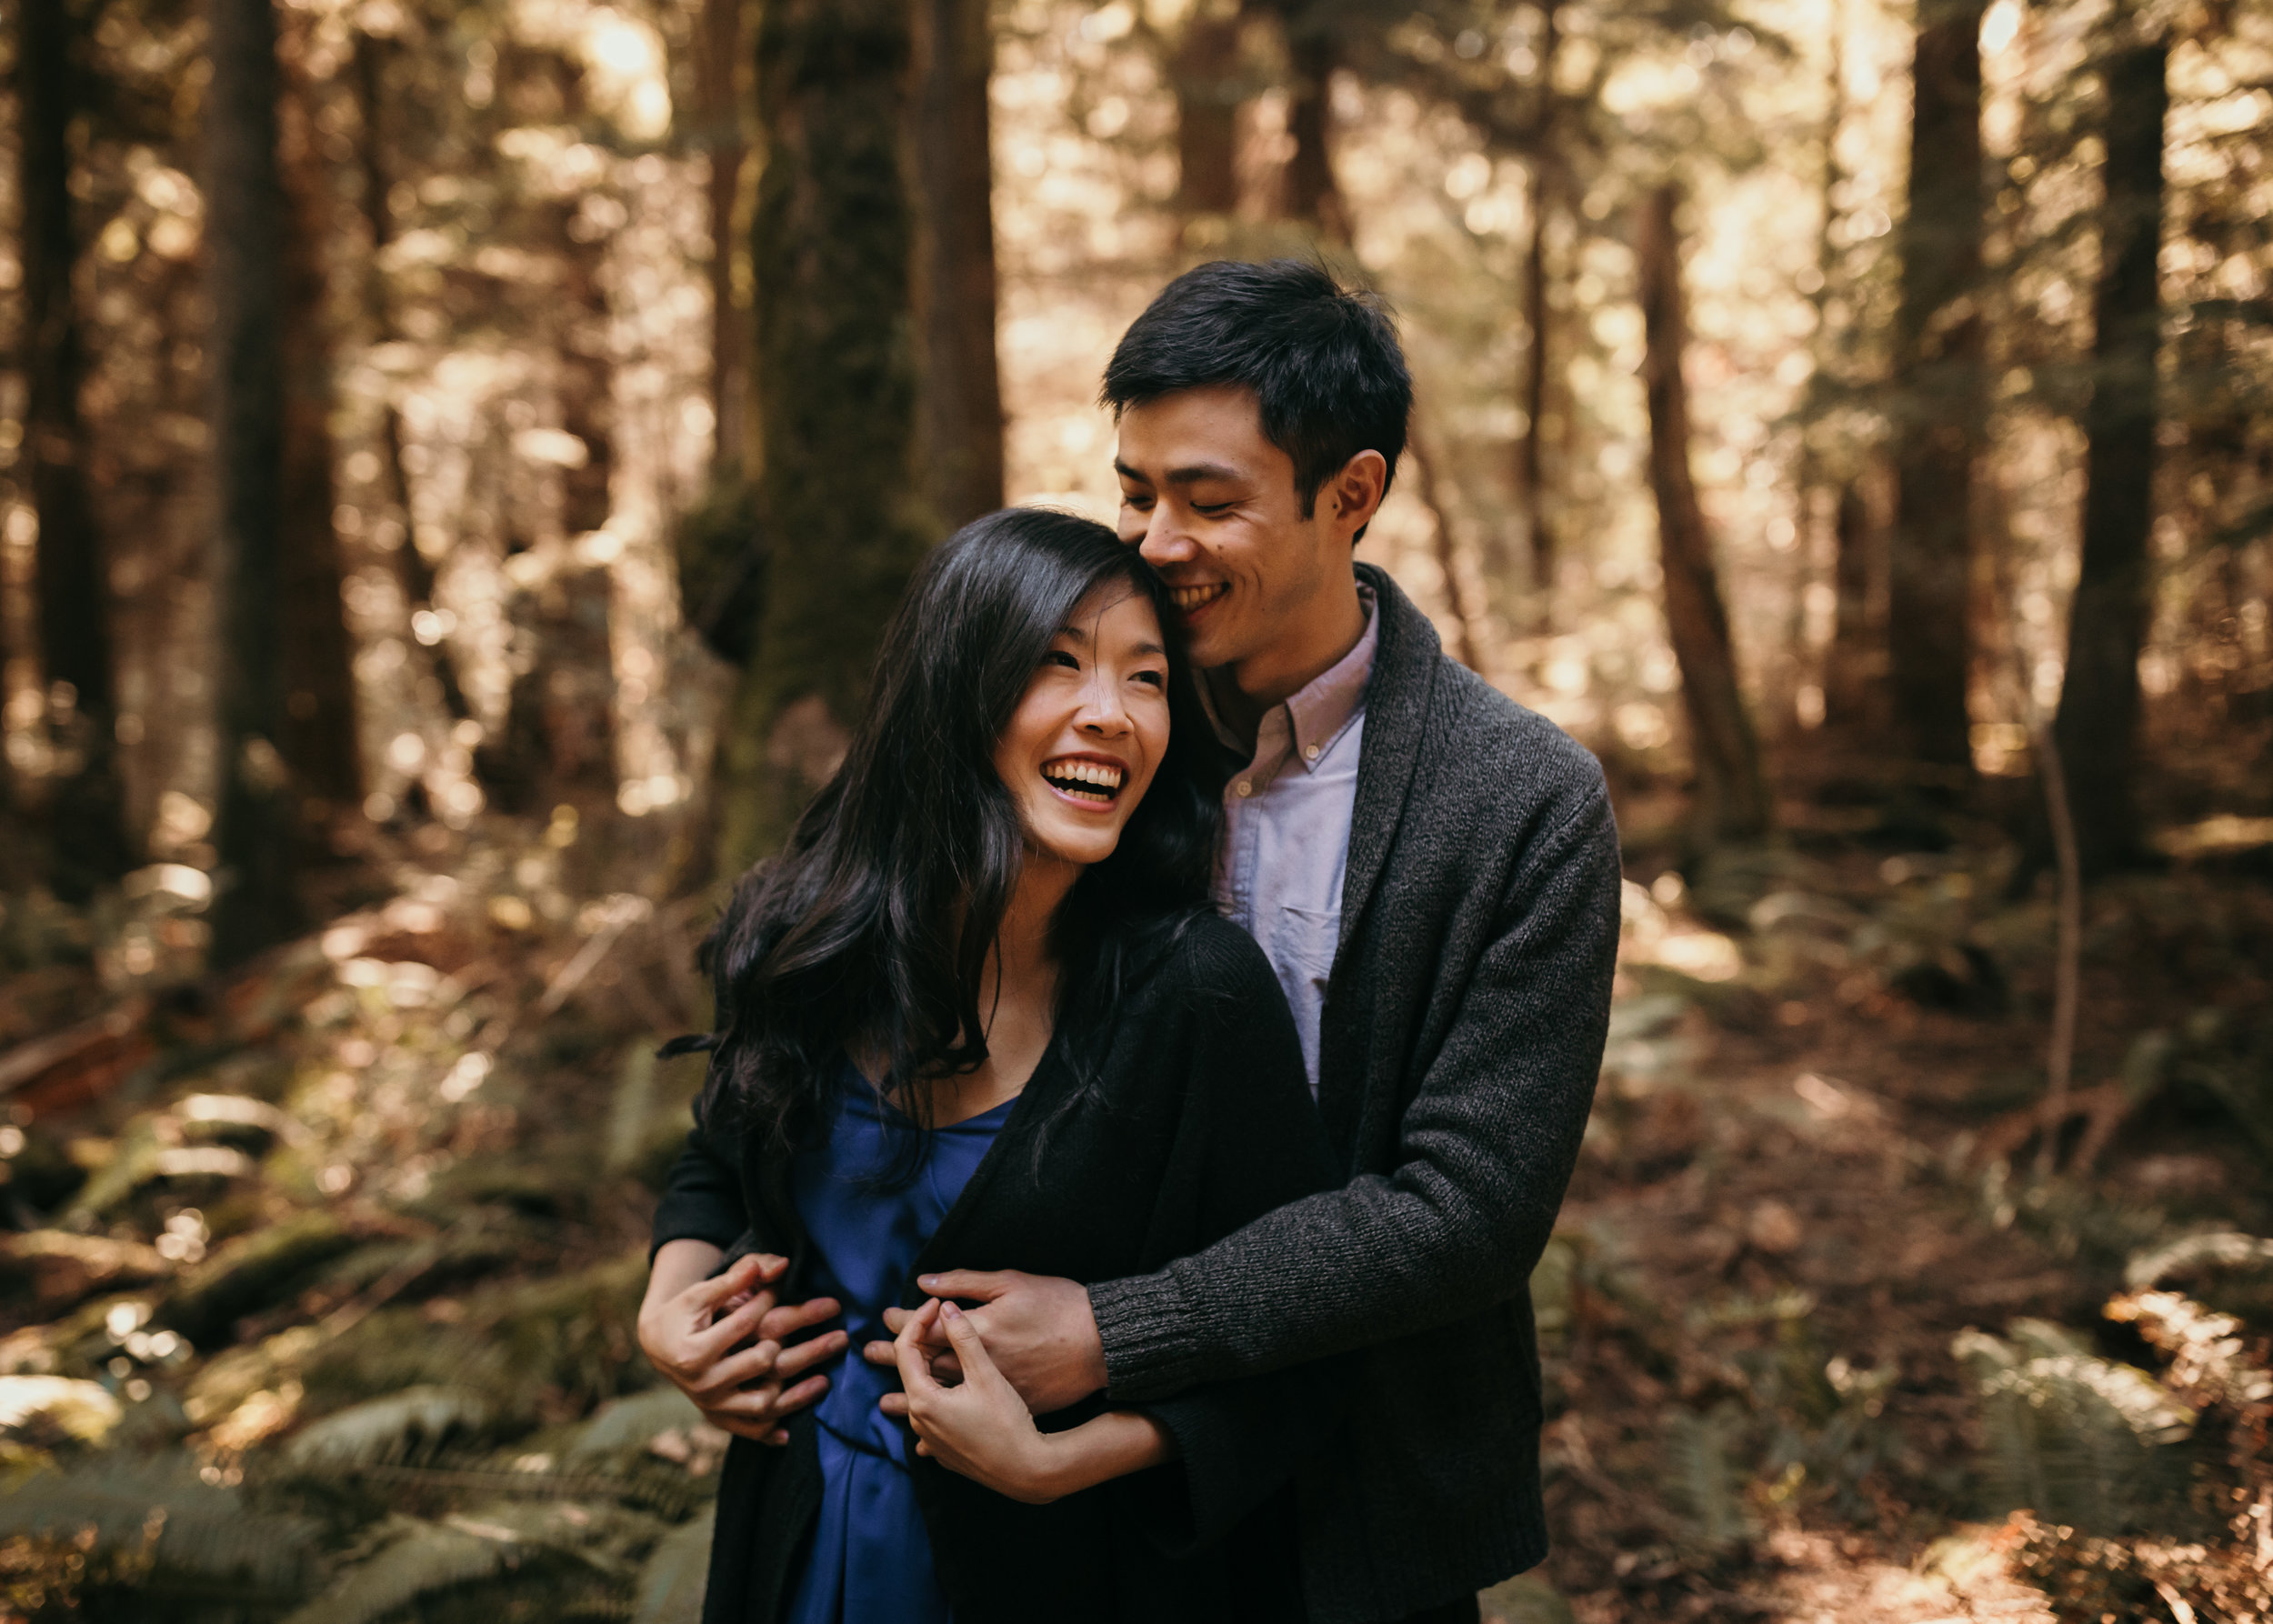 Sunshine Coast Forest Engagement Photos — Jennifer Picard Photography — Vancouver Wedding Photographer & Videographer — 376.JPG